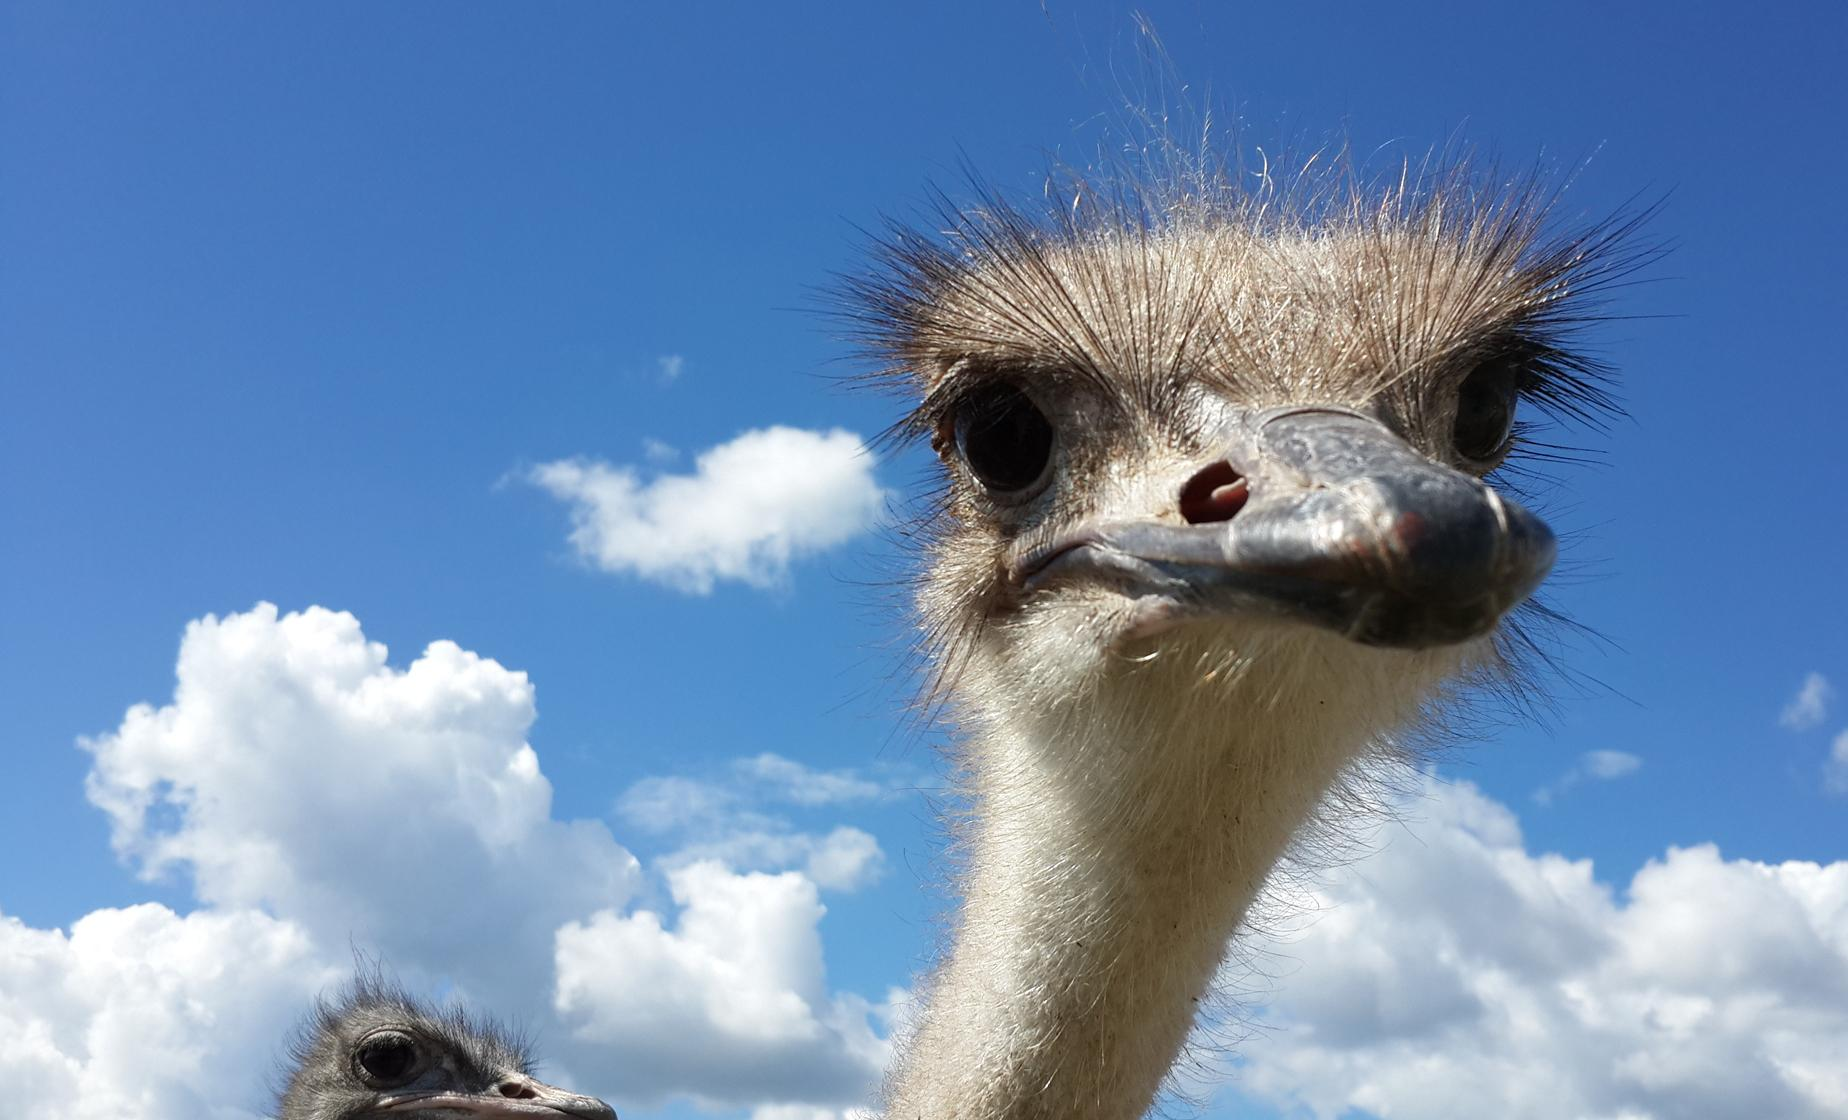 HATO Caves & Ostrich Farm